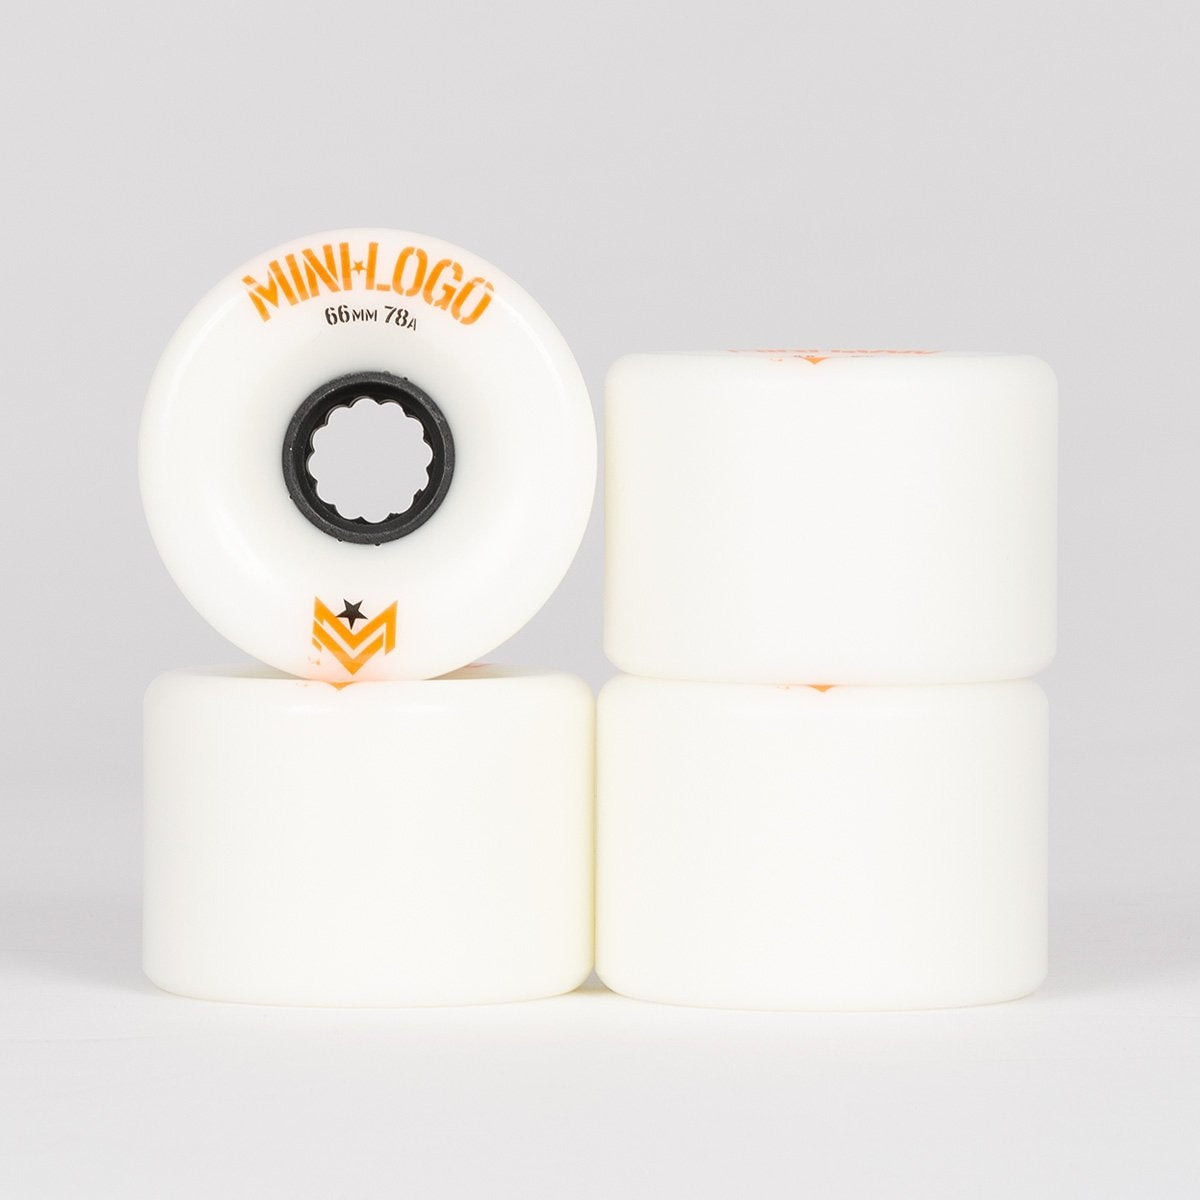 Mini Logo A-Cut A.W.O.L. 78A Wheels White 66mm - Skateboard